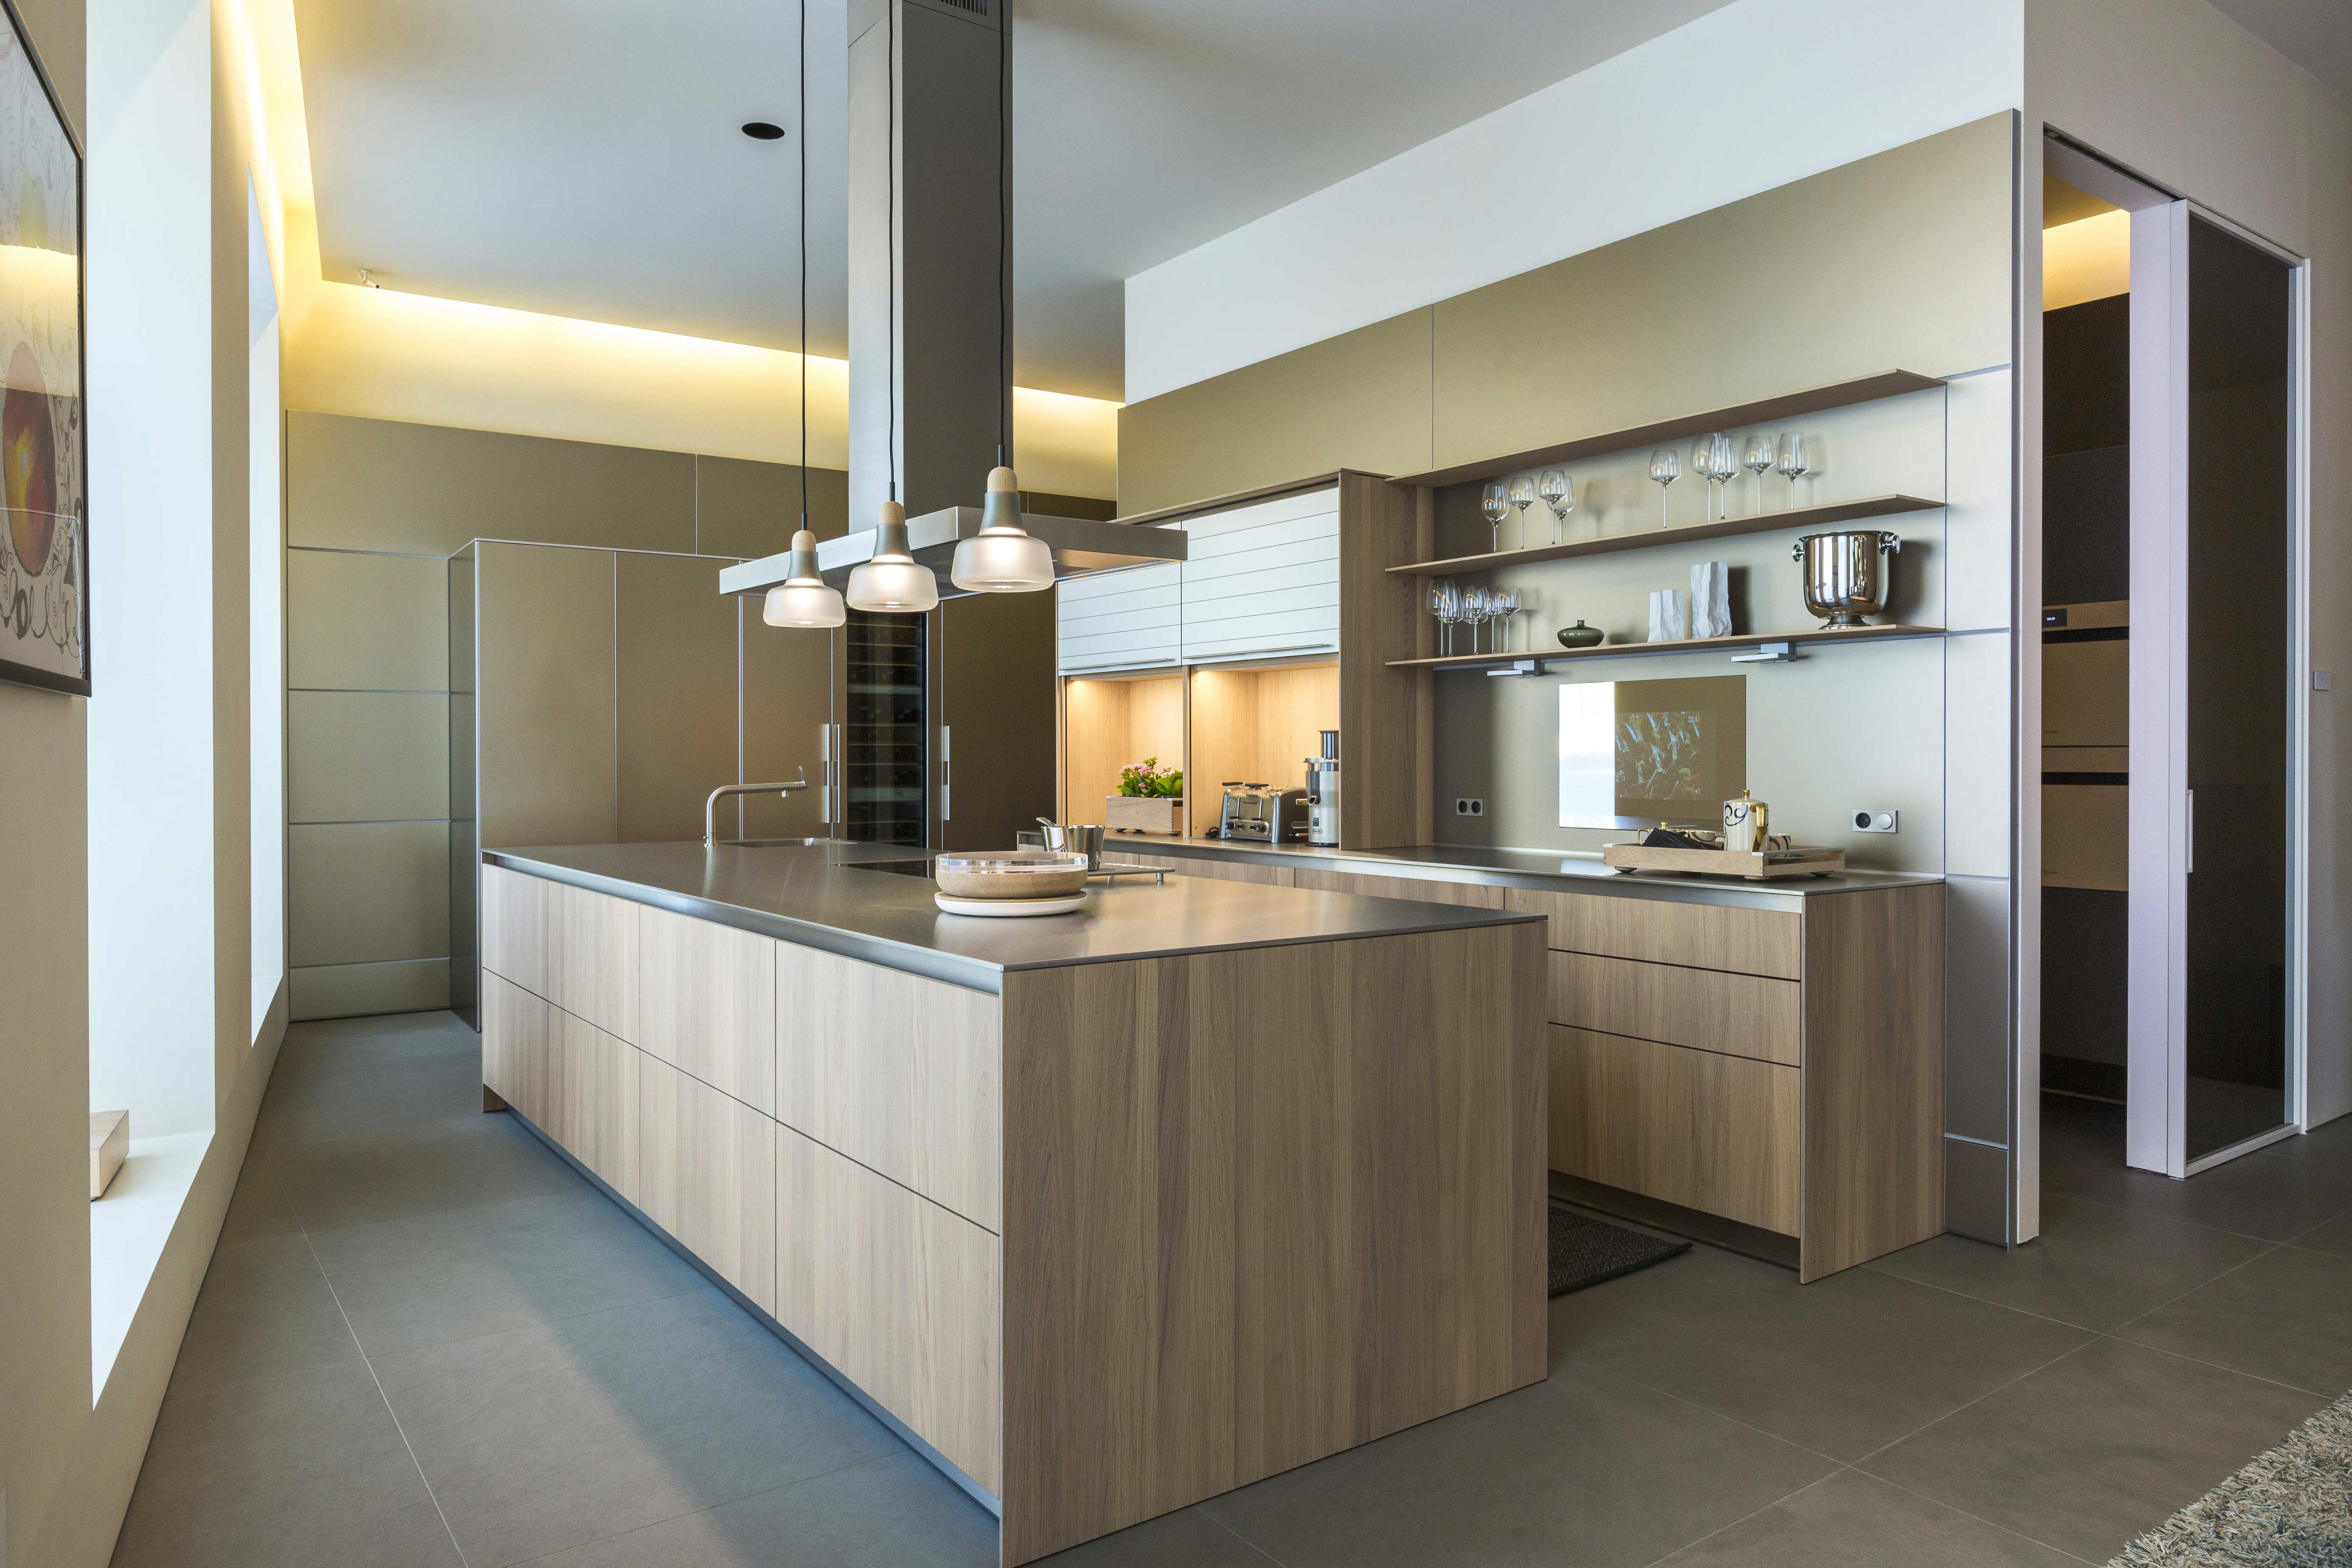 Bulthaup B3 Eurostyling Luxury Kitchen – Solid Oak And Sand Aluminum Bulthaup B3 - Eurostyling